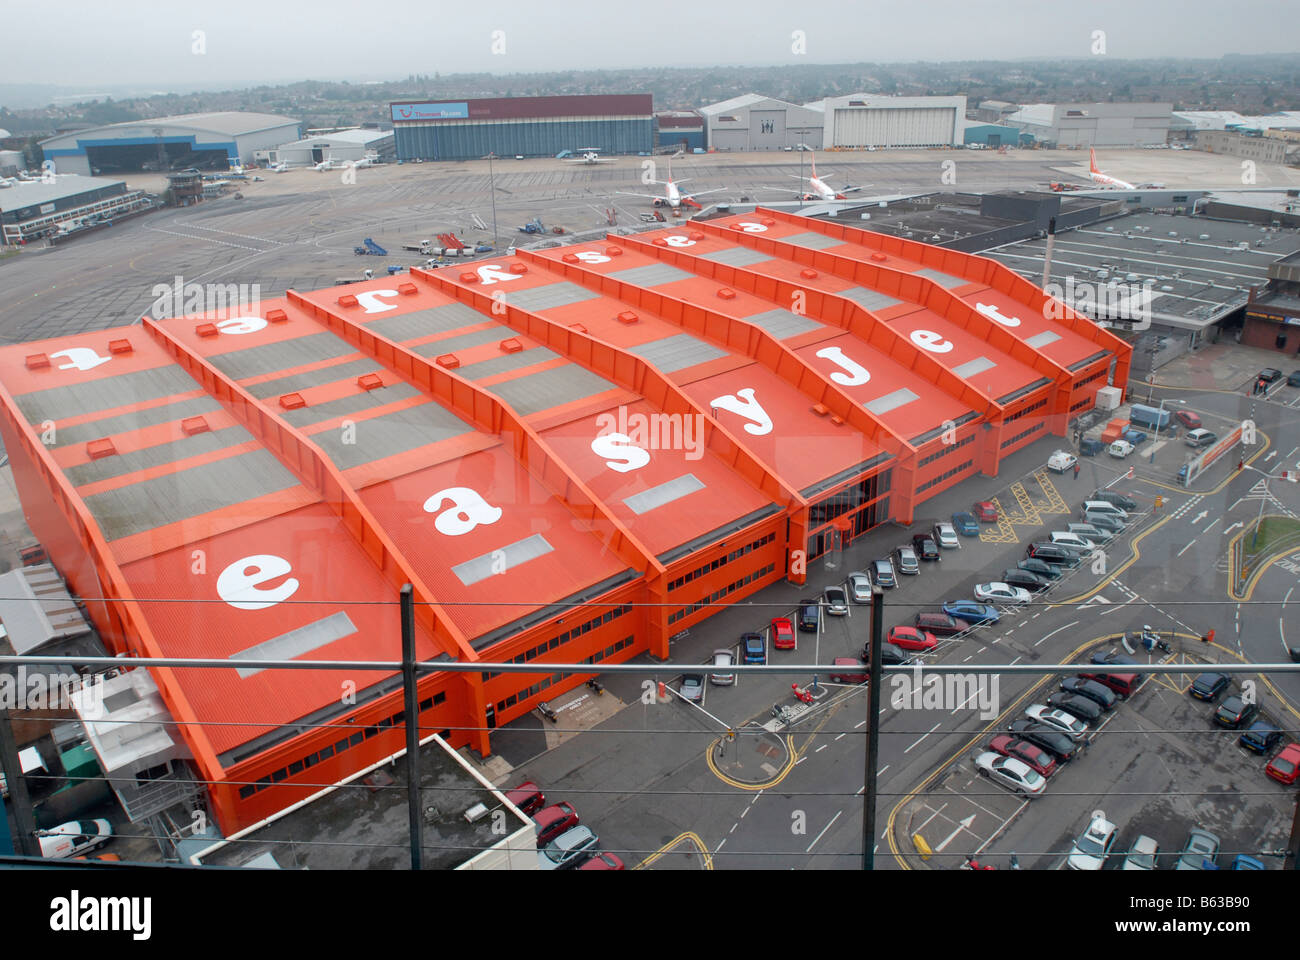 View of easyjet HQ at Luton Airport - Stock Image